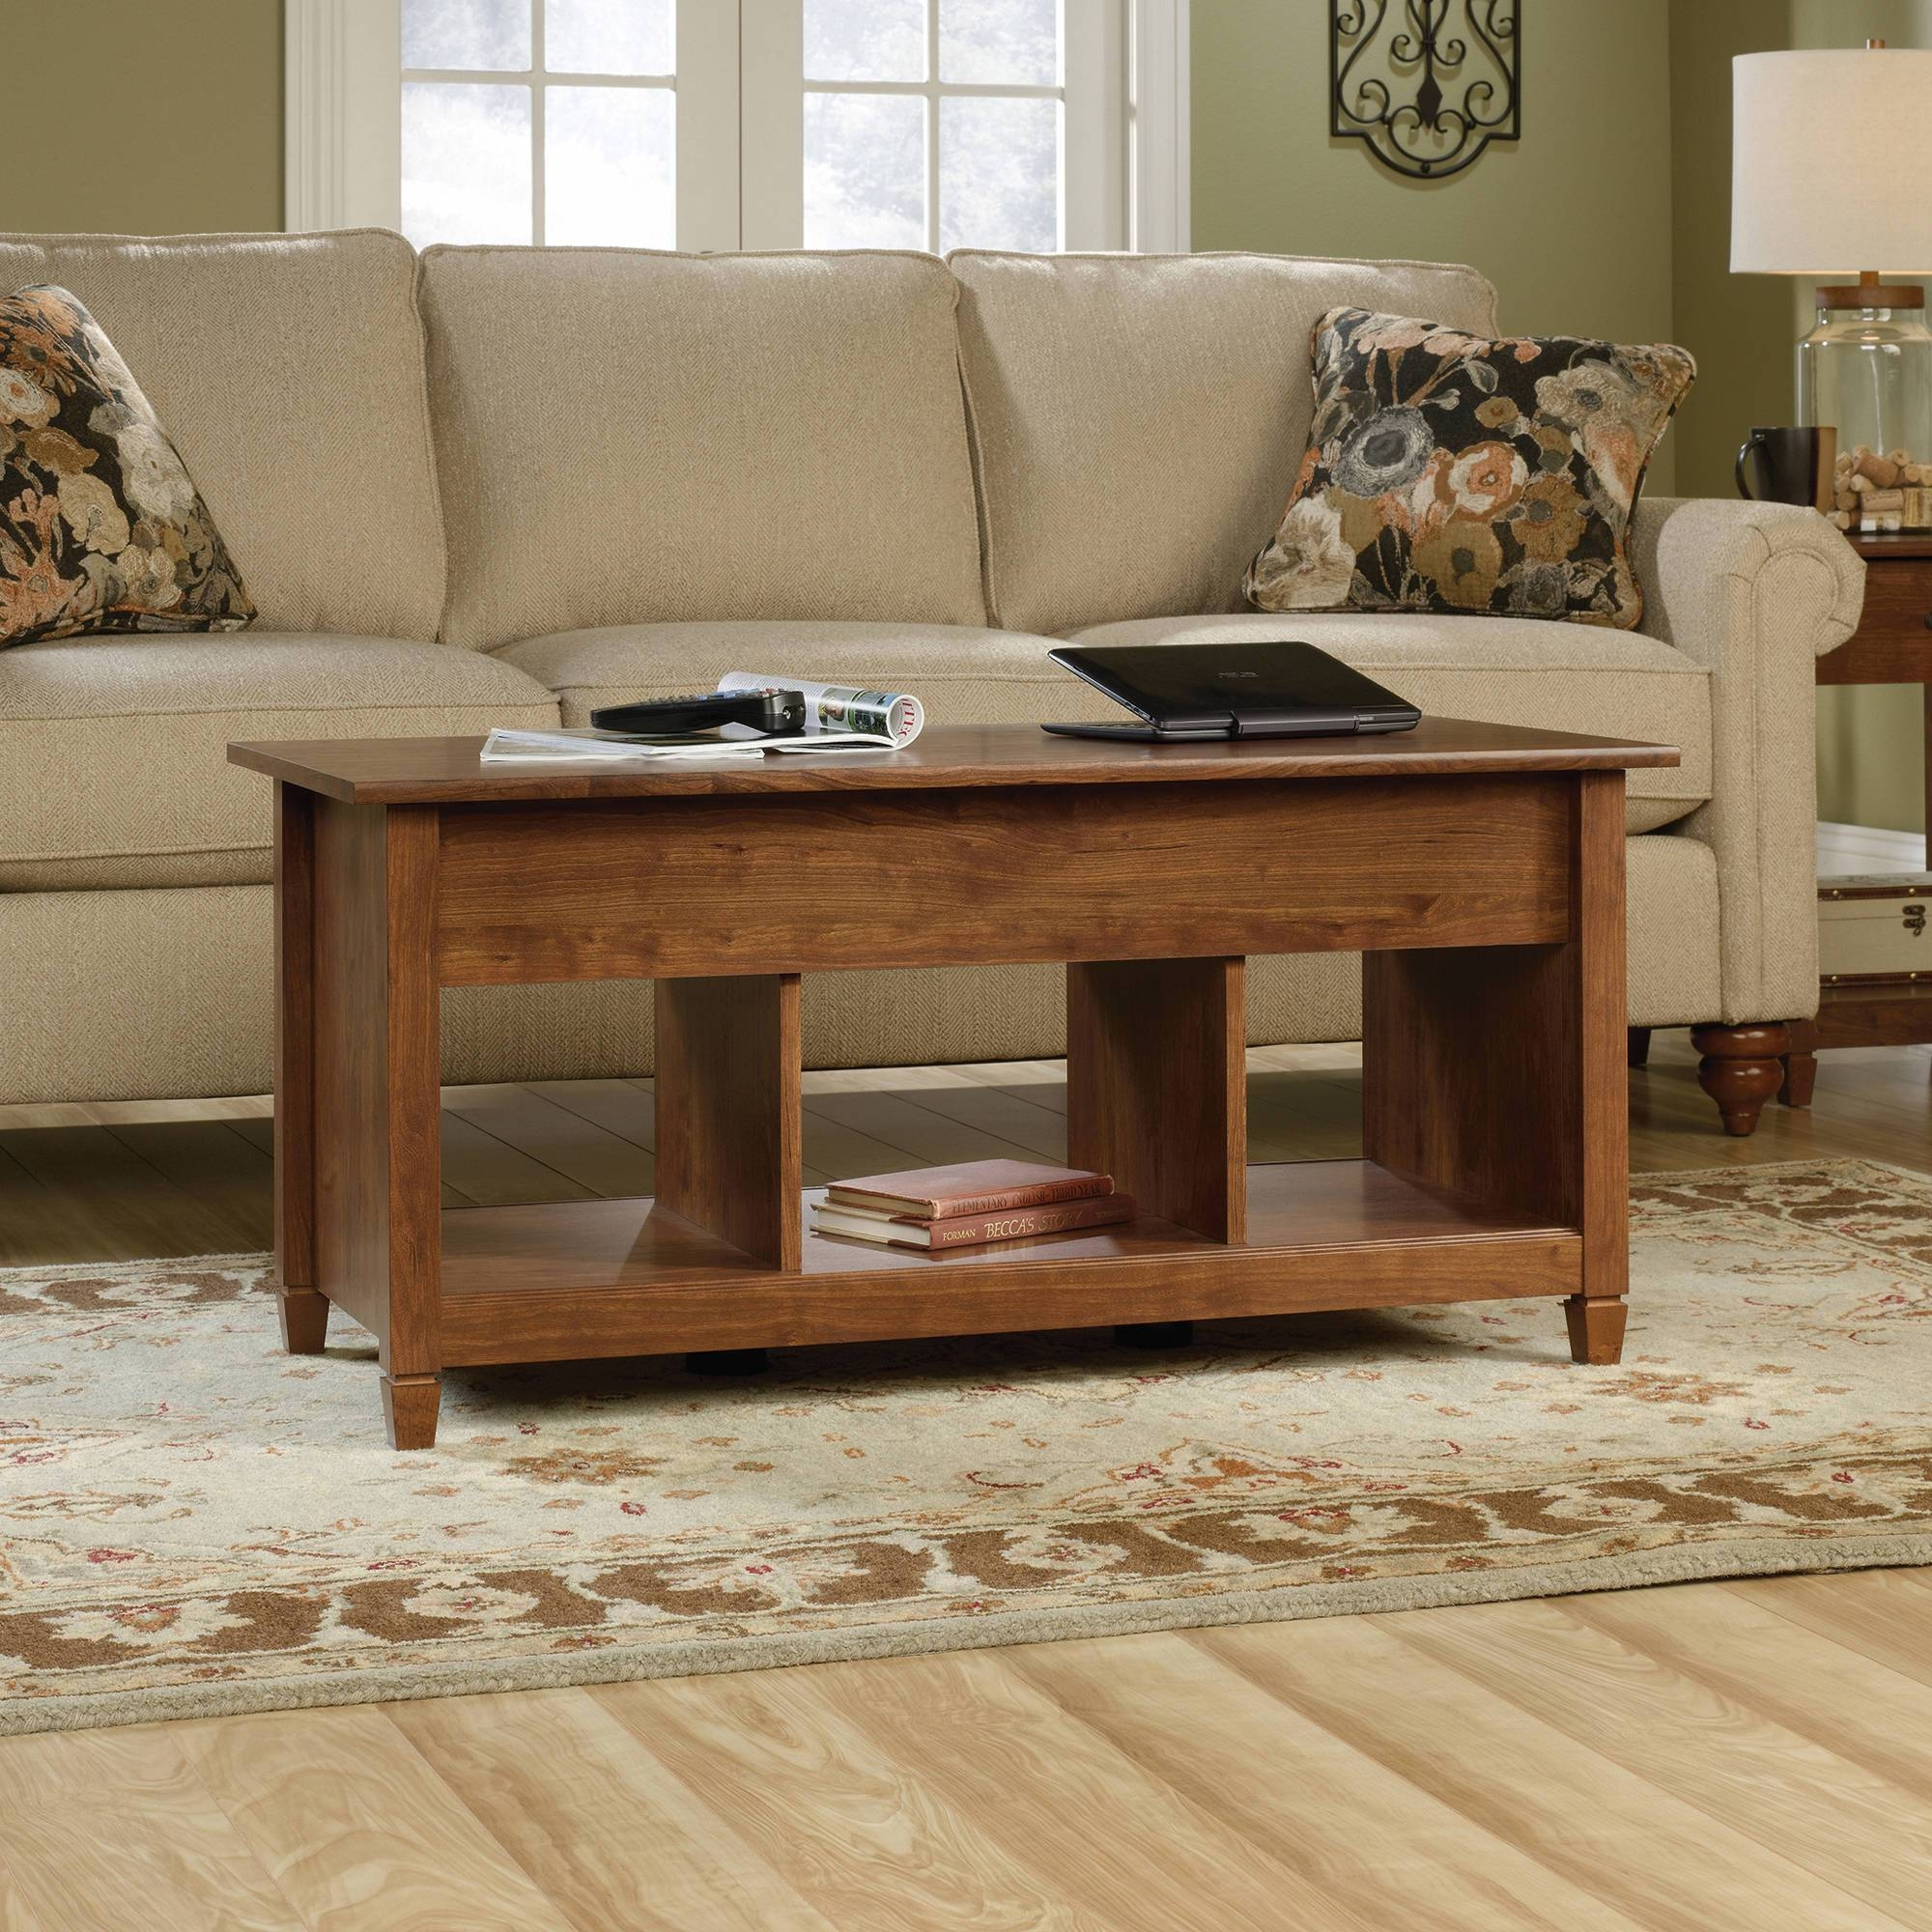 Mainstays Lift Top Coffee Table, Multiple Colors – Walmart Regarding Coffee Tables Extendable Top (View 20 of 30)